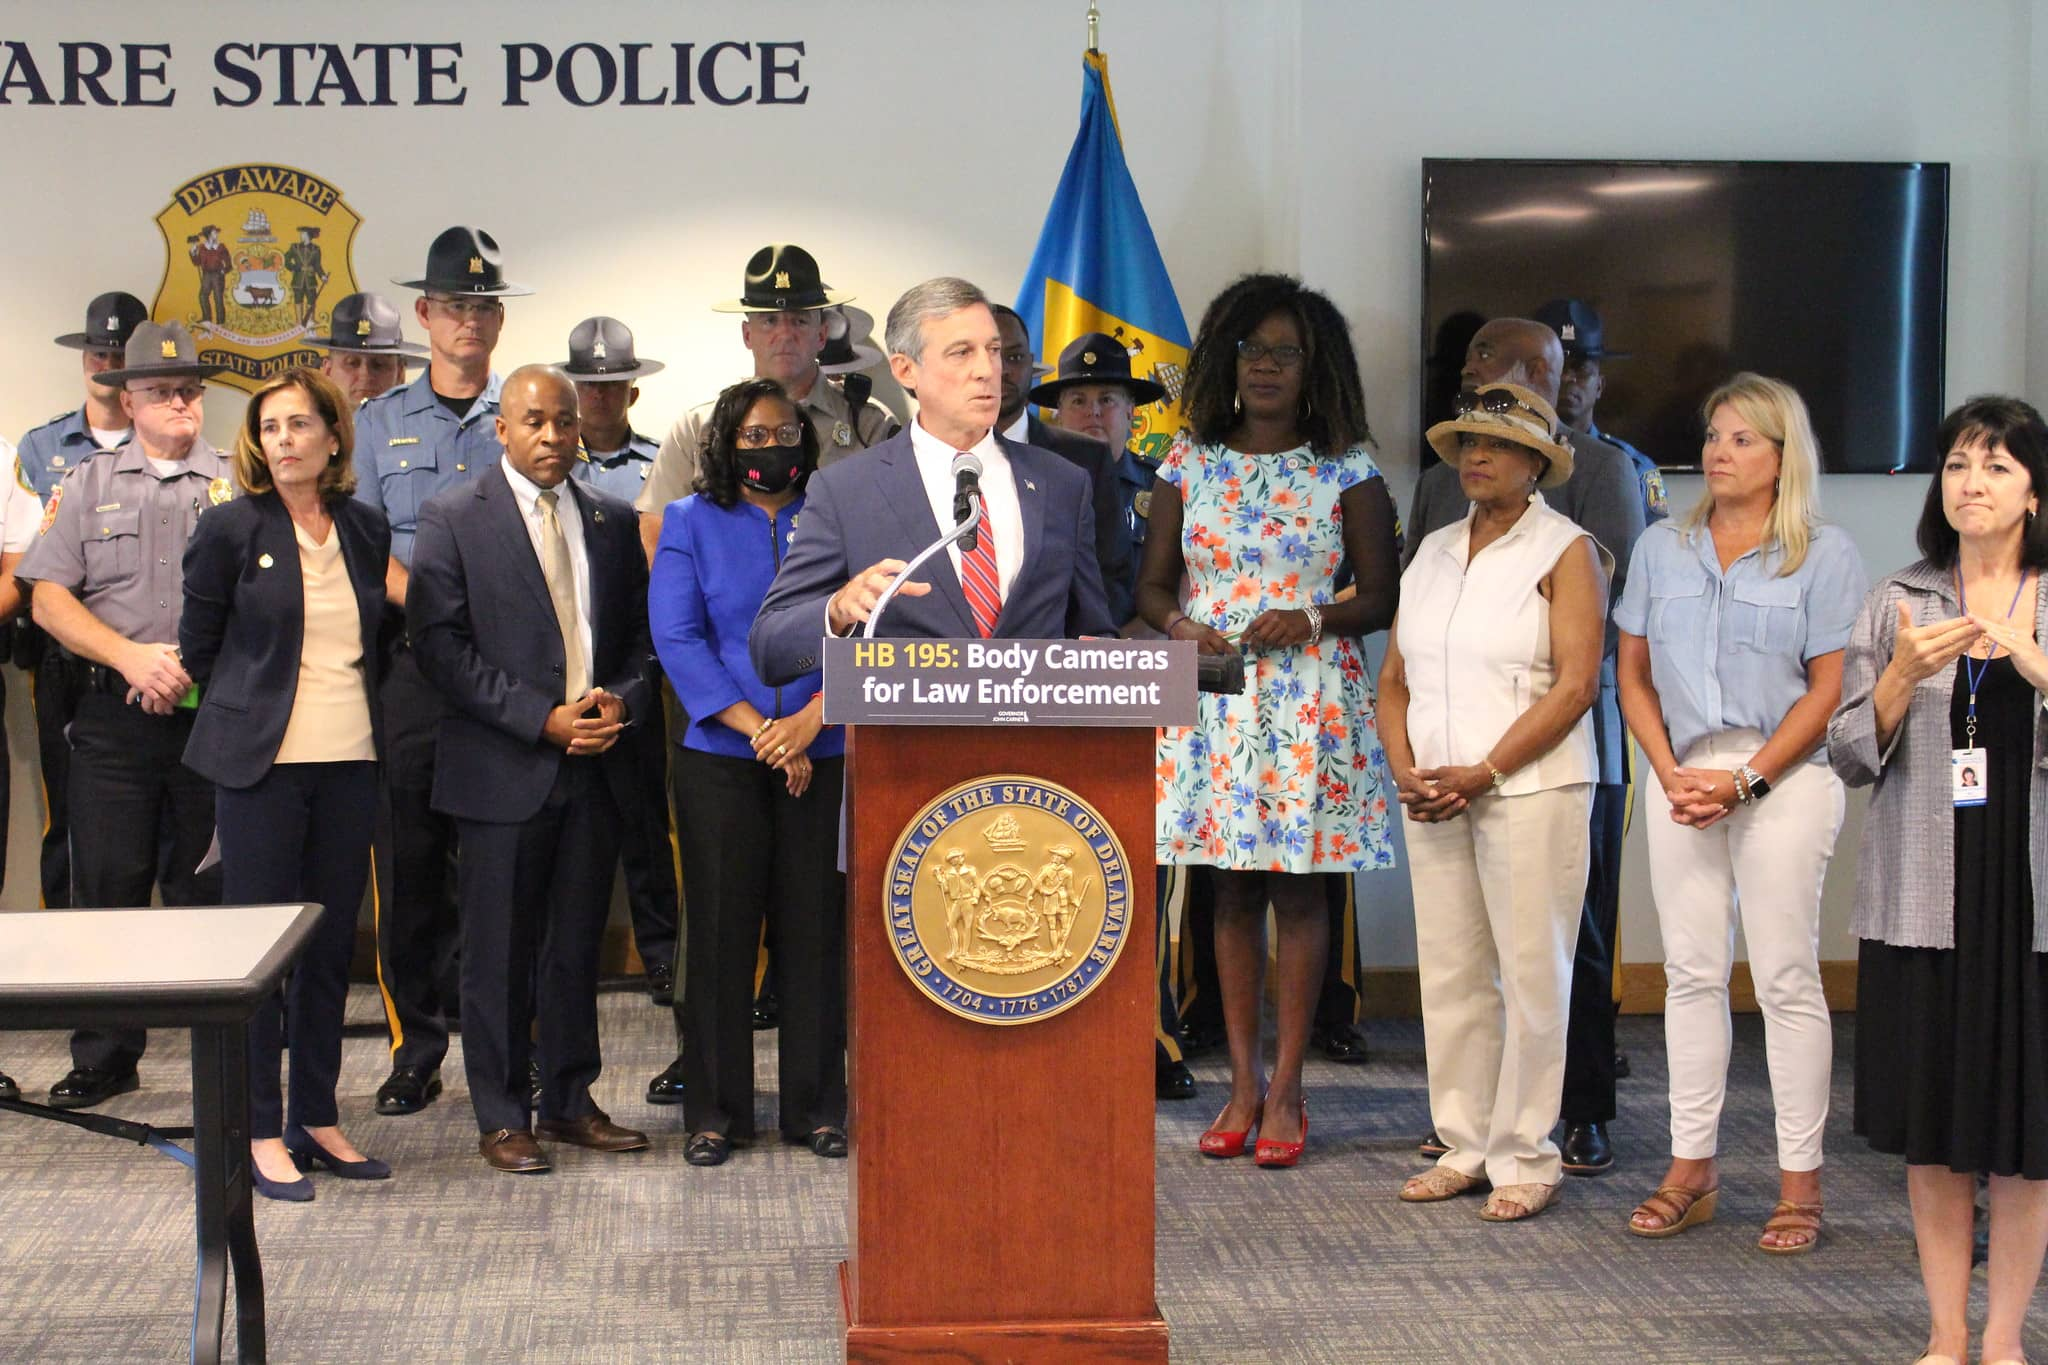 Governor Carney stands at a podium and is surrounded by legislators, law enforcement and advocates.